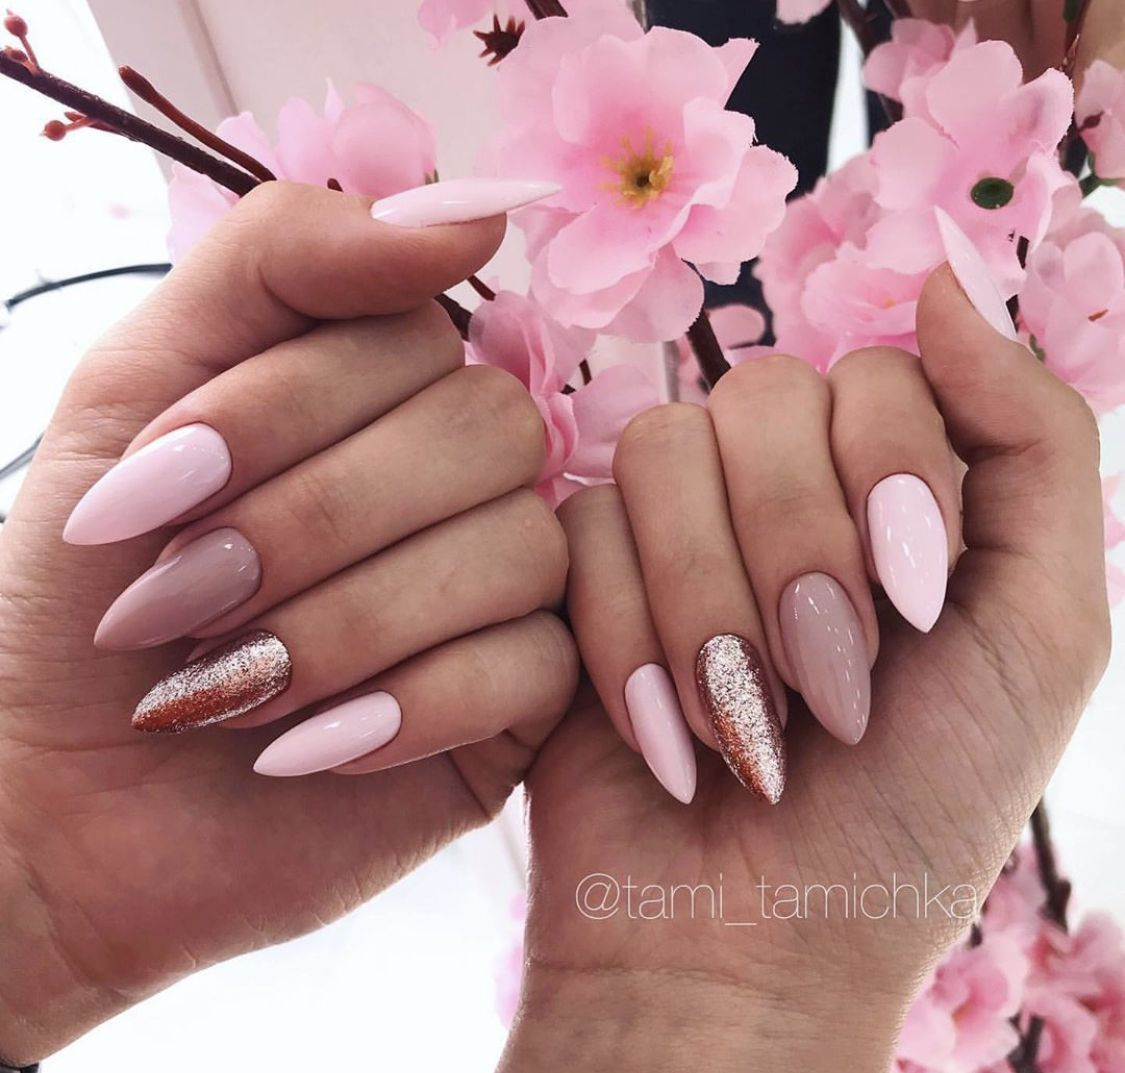 Pin By Pearl Cruviv On Nailed It In 2020 Vogue Nails Peach Nails Summer Acrylic Nails